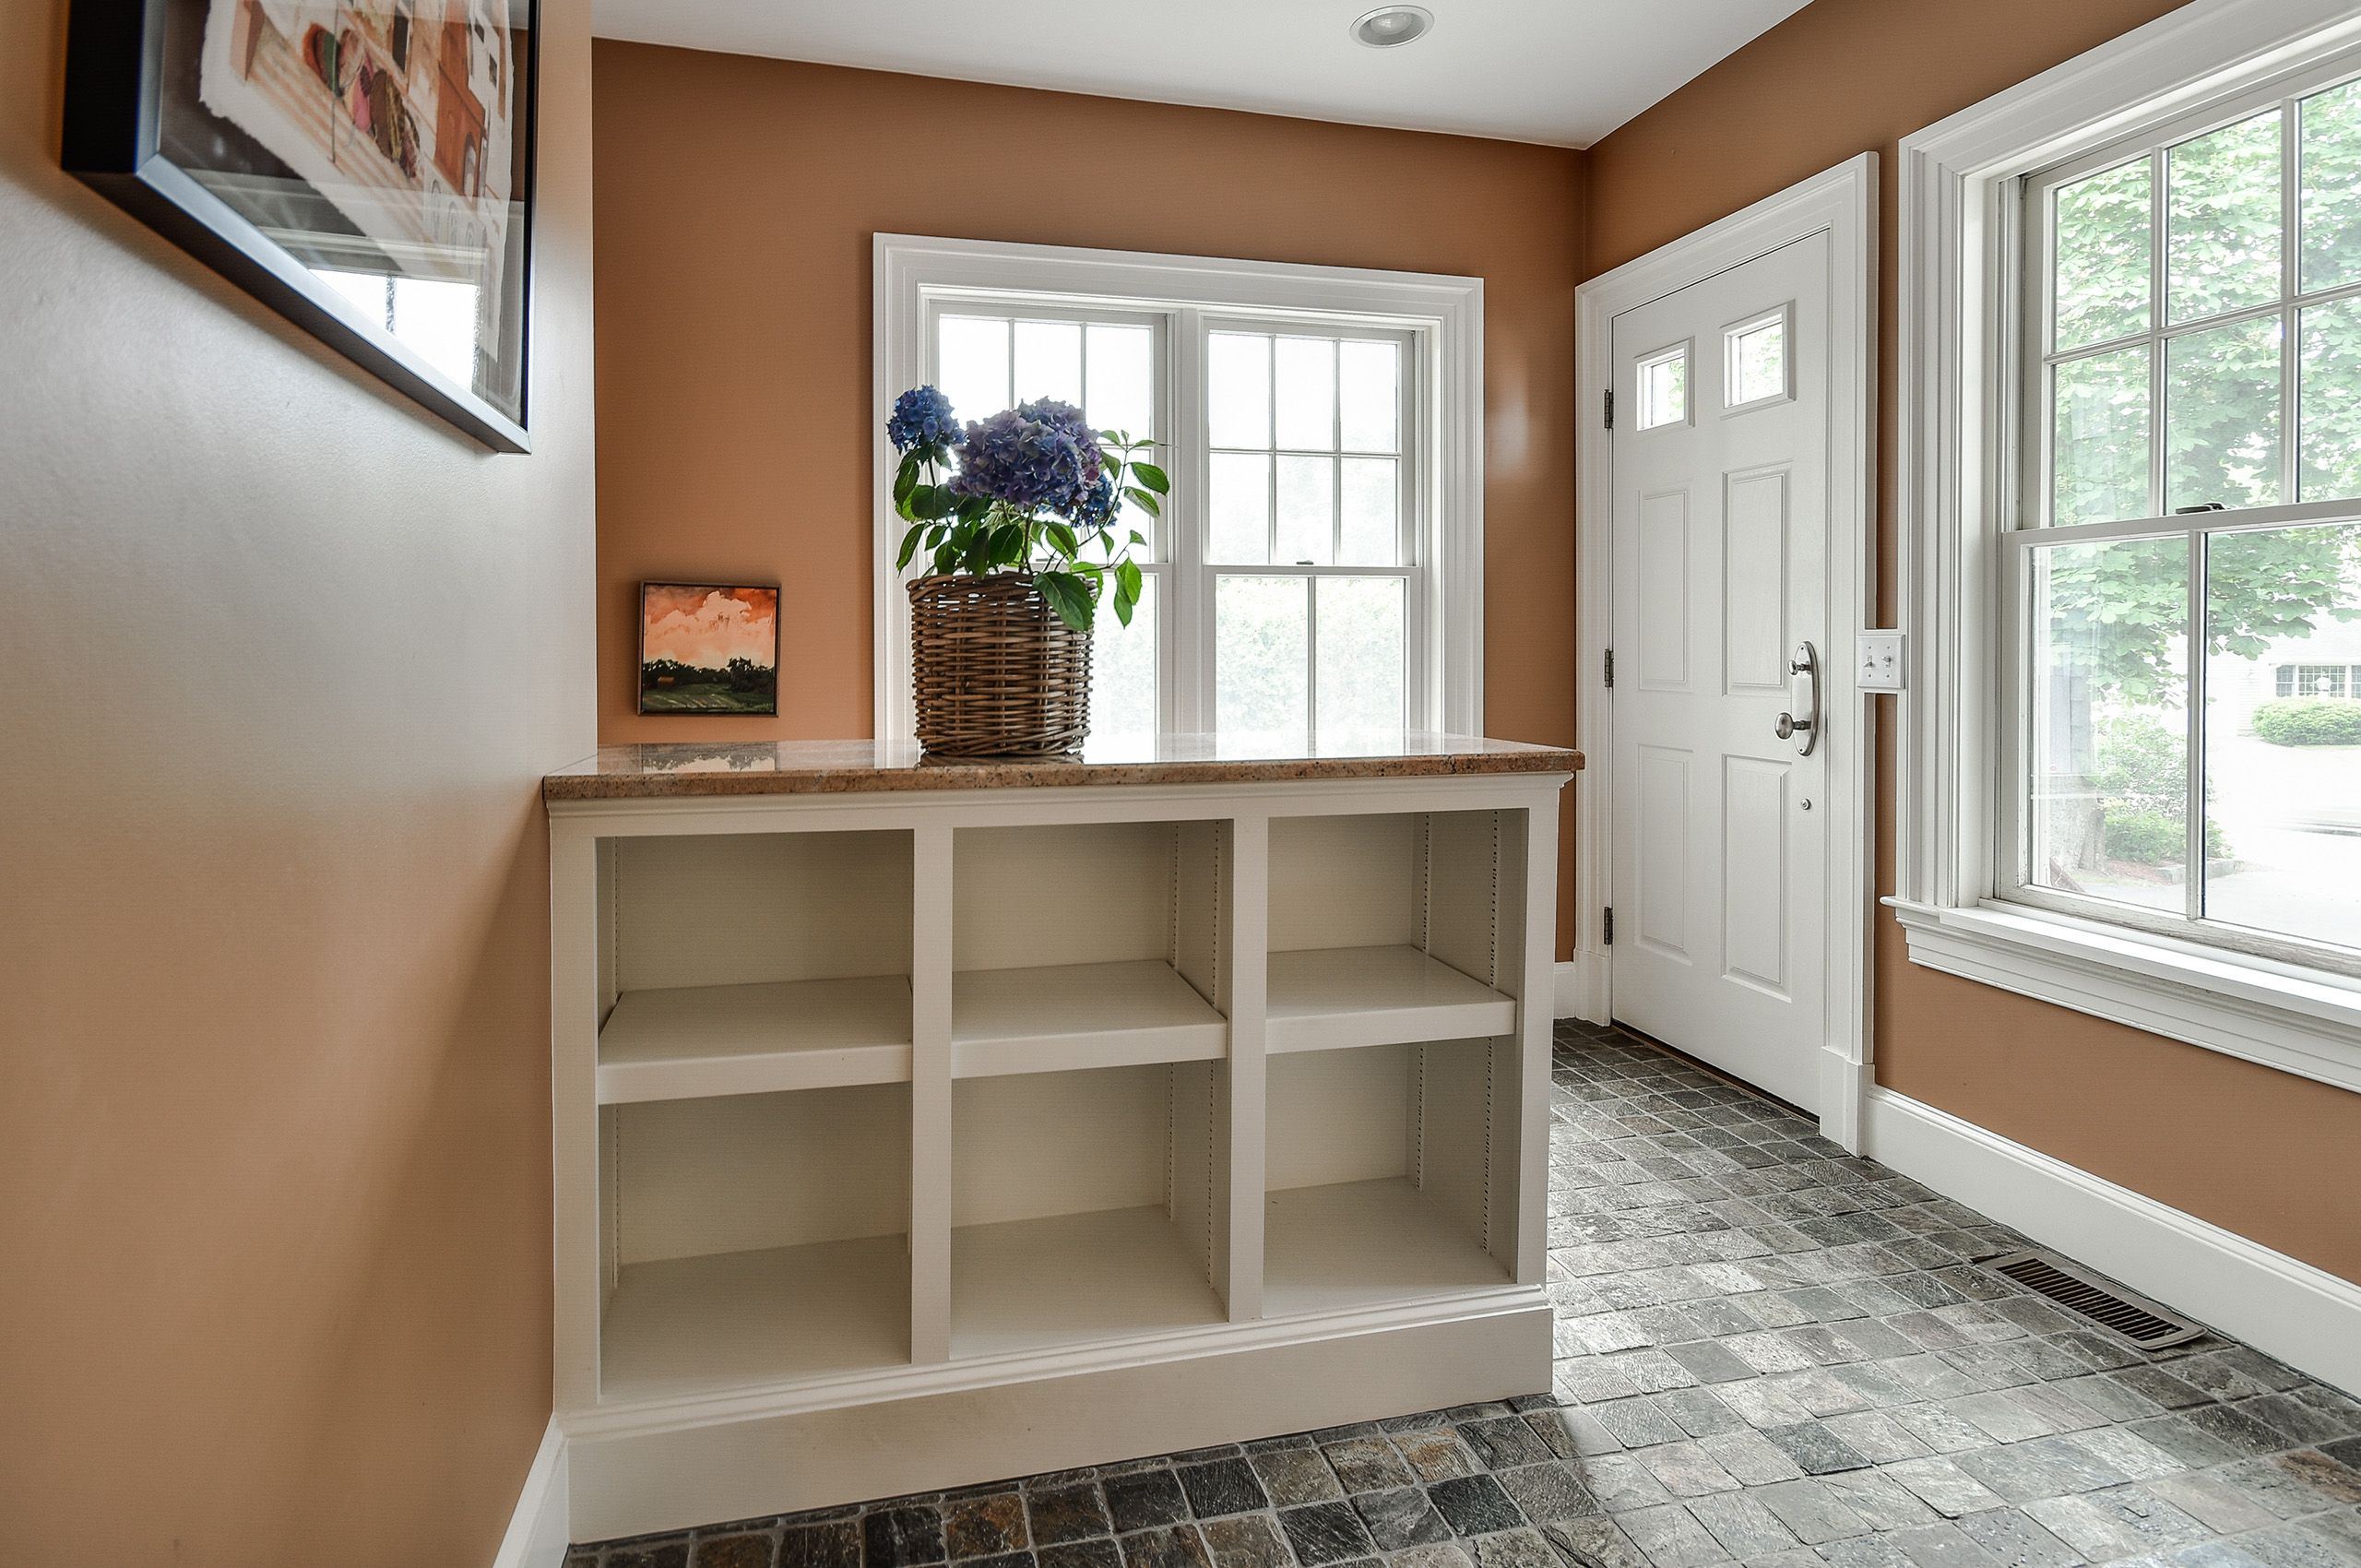 WestMainResidence-WestboroughMA-Mudroom.jpg